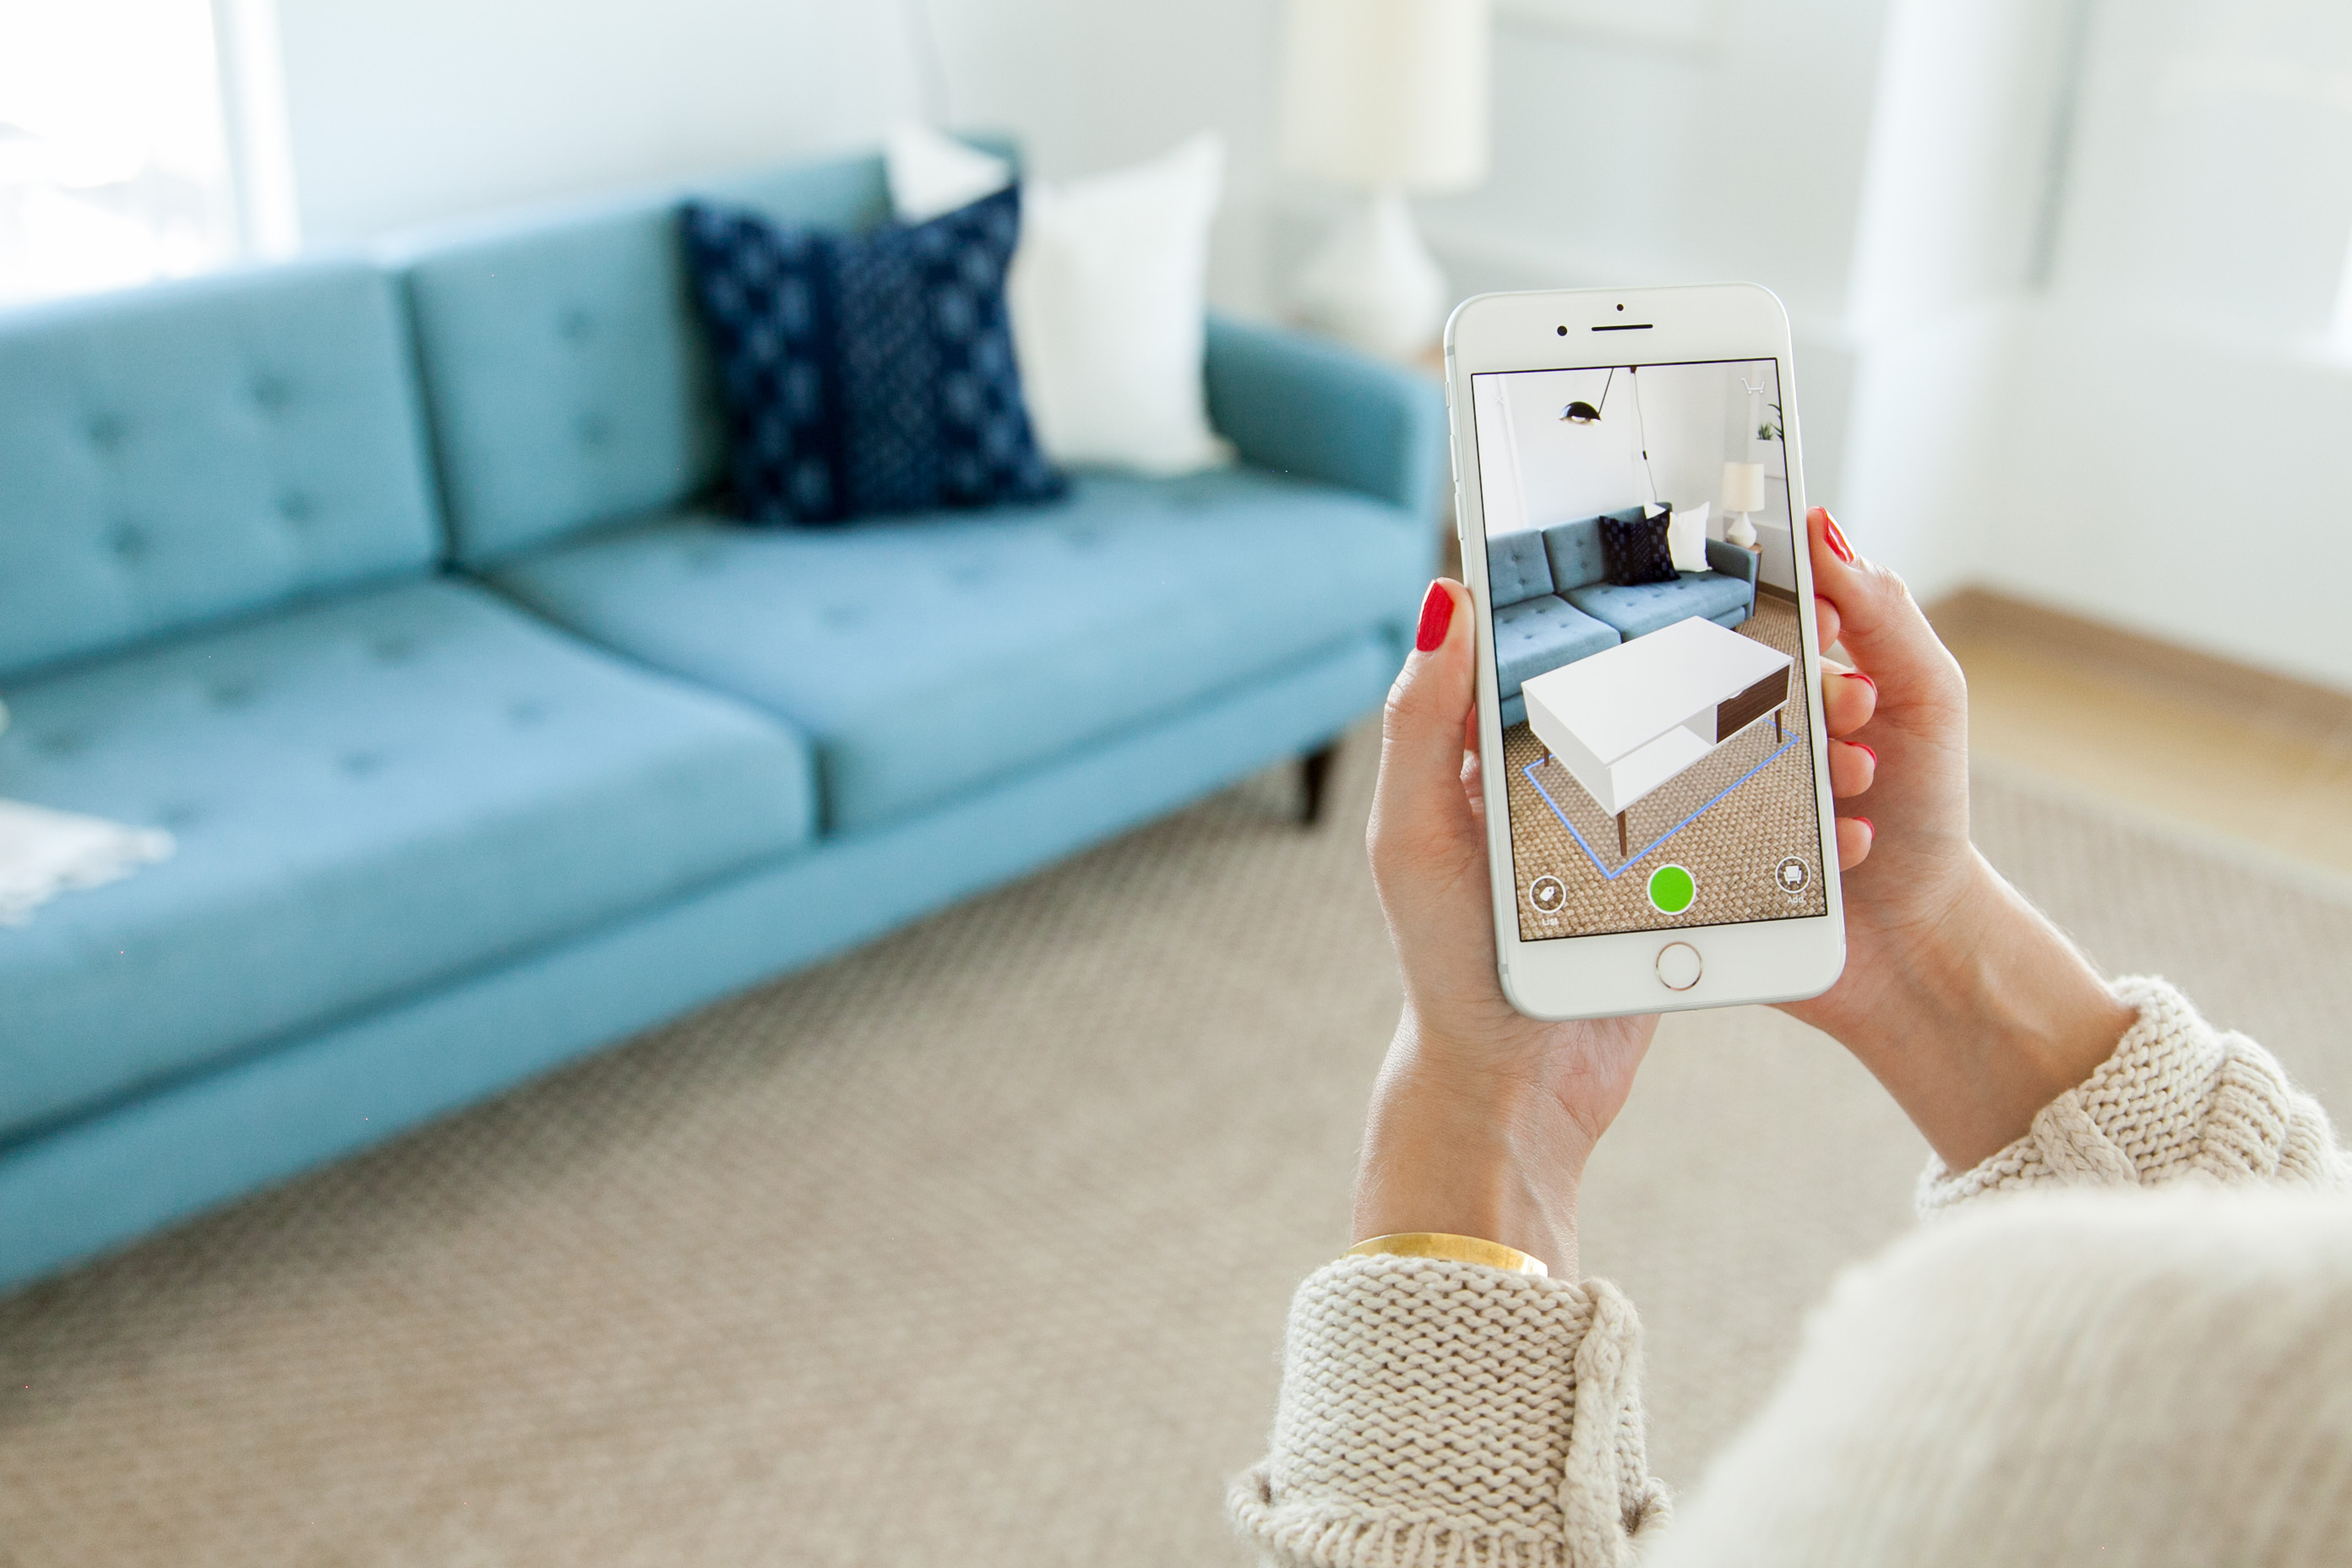 Plan The Living Room of Your Dreams W/ These Interior Design Apps interior design apps Plan The Living Room of Your Dreams W/ These Interior Design Apps Unveiled The 10 Best Interior Design Apps for Smartphones 2